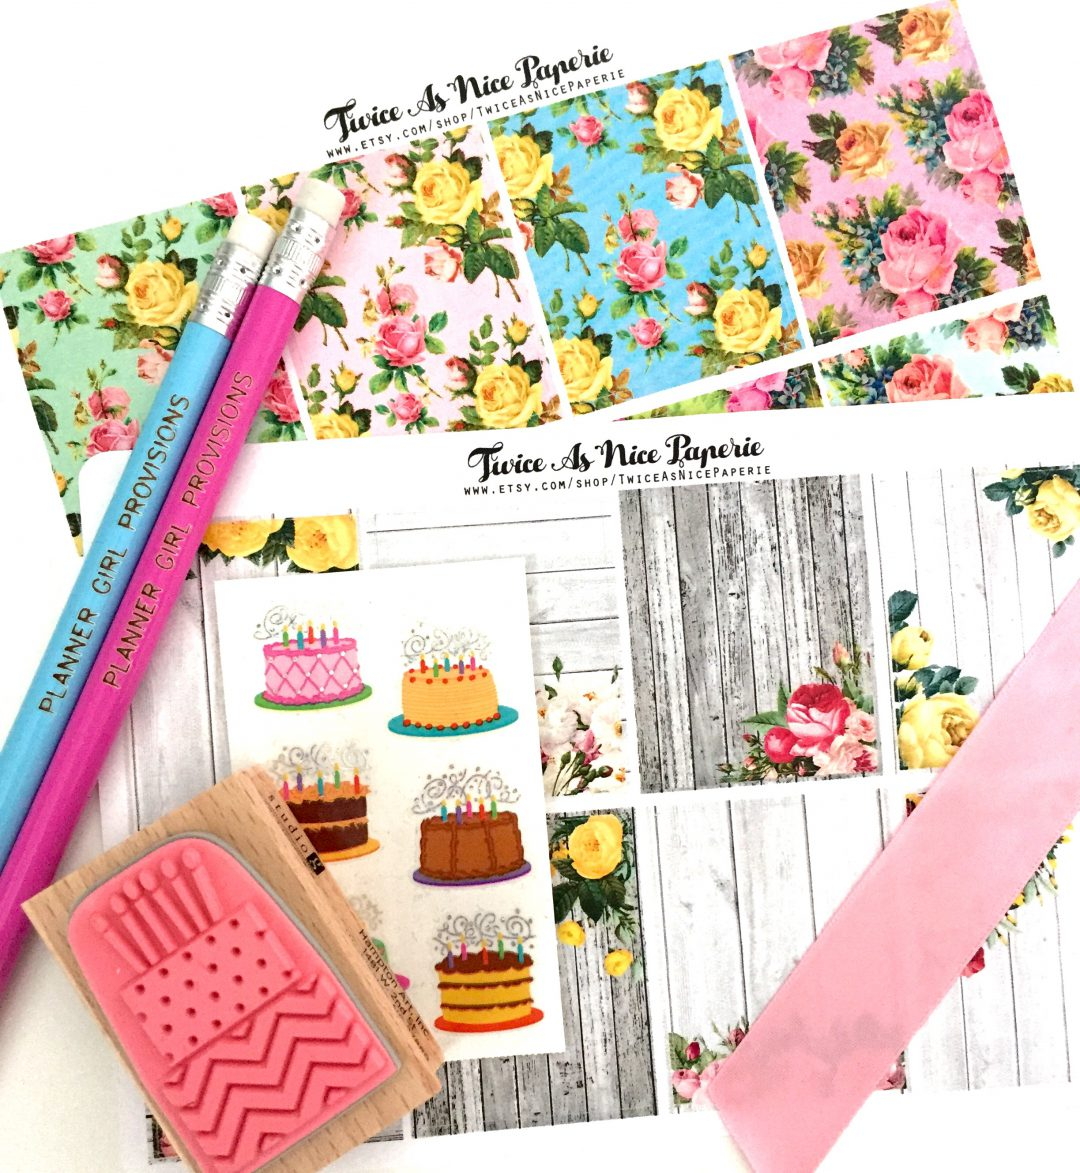 Full Box Stickers for Erin Condren Life Planner by Etsy Shop Twice As Nice Paperie along with other stamps stickers and planner accessories from Planner Girl Provisions